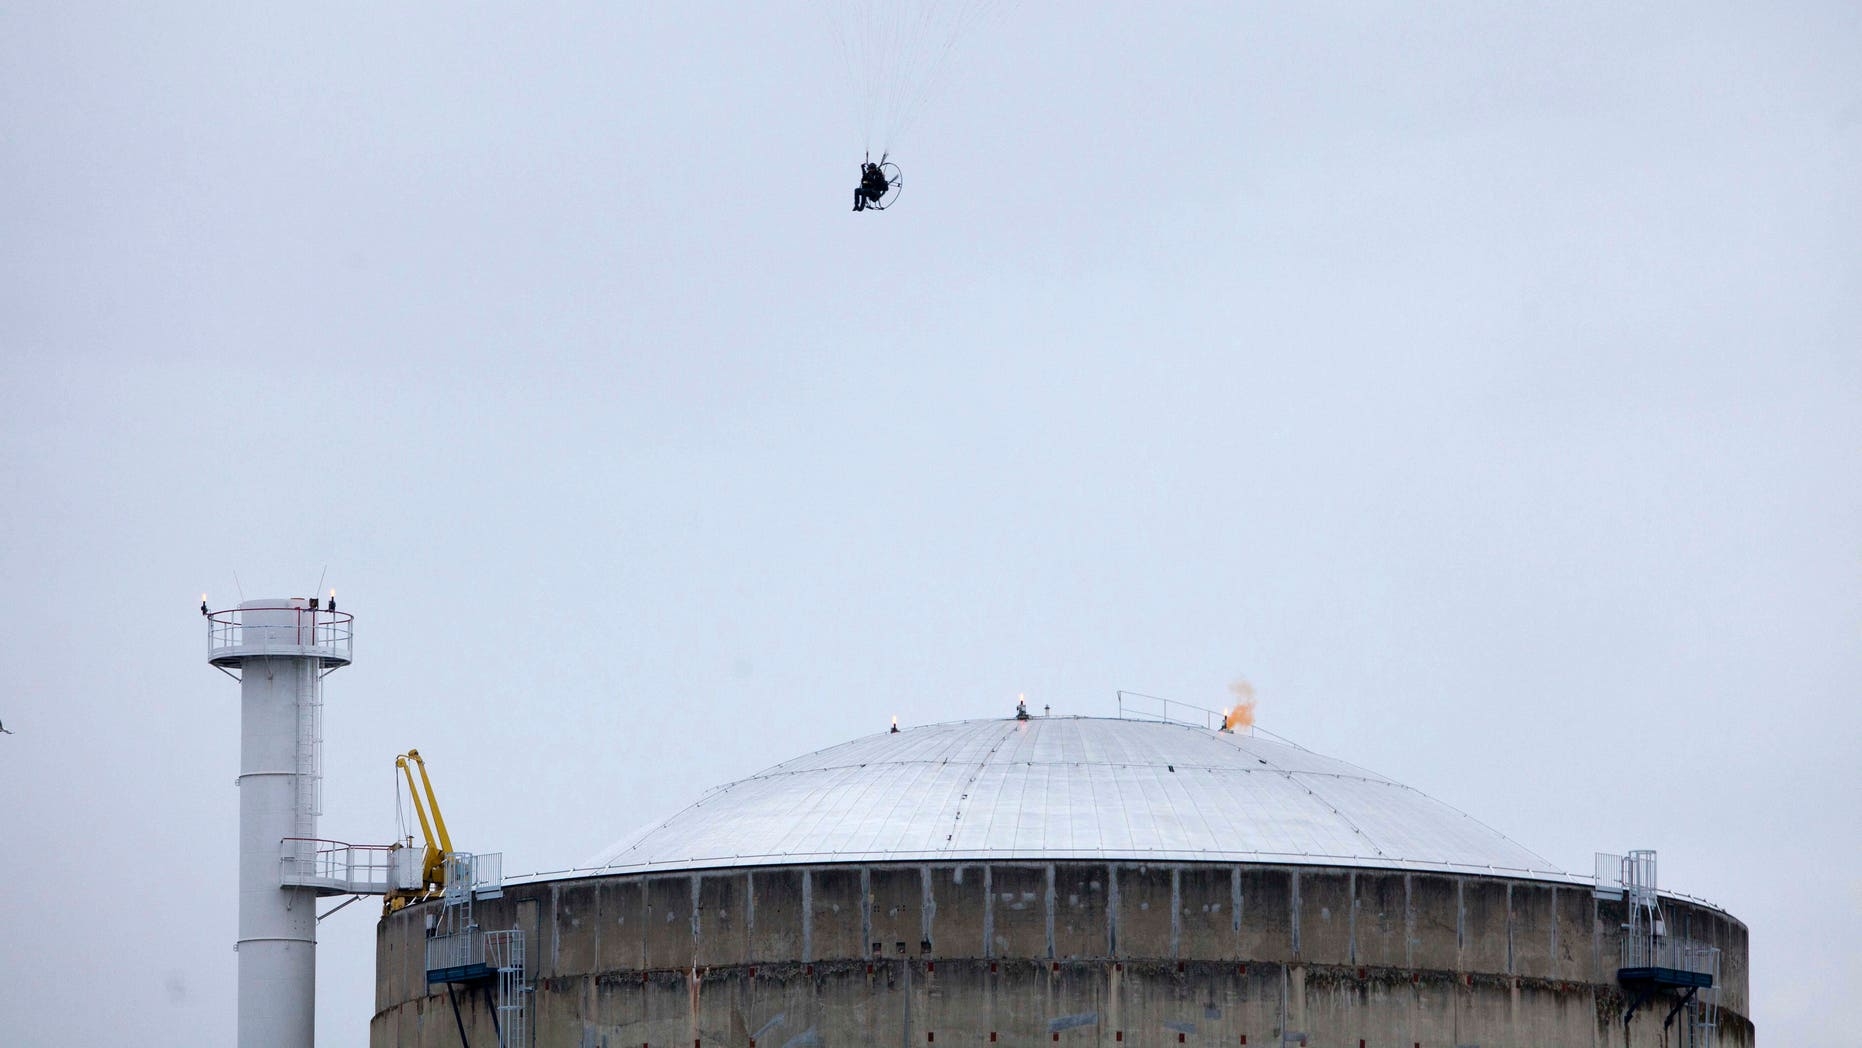 May 2, 2012: In this photo provided by Greenpeace, an activist in a motorized paraglider flies over the Bugey nuclear power plant, near Saint-Vulbas, central France, and drops a flare on the roof.